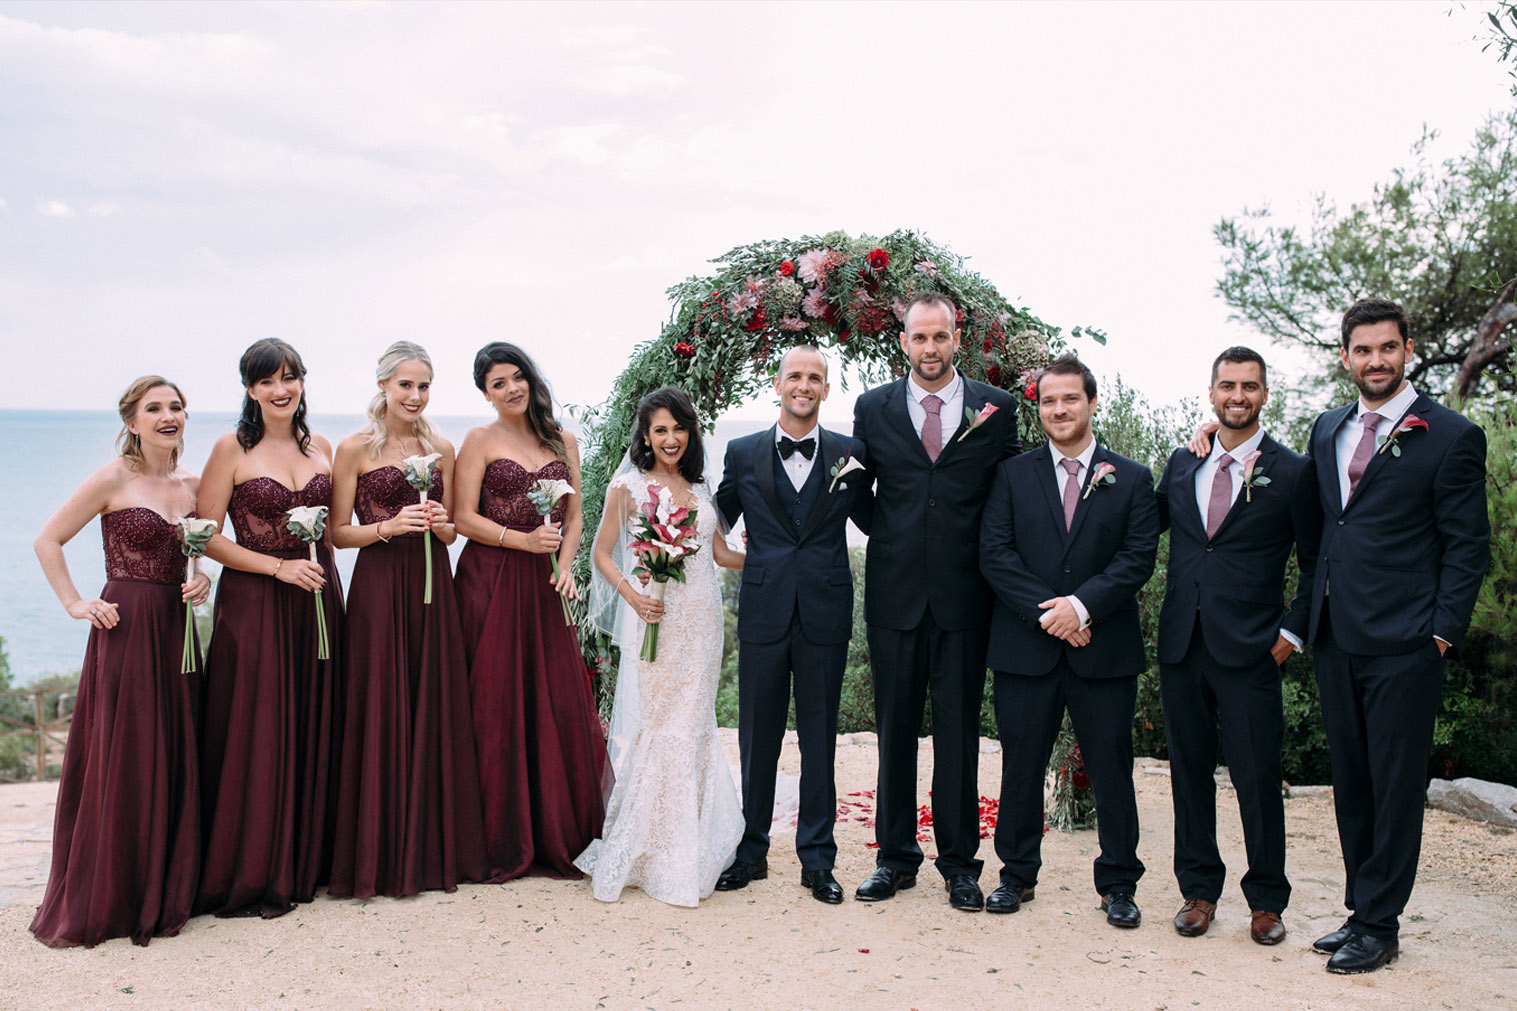 floral-arch-wedding-sitges